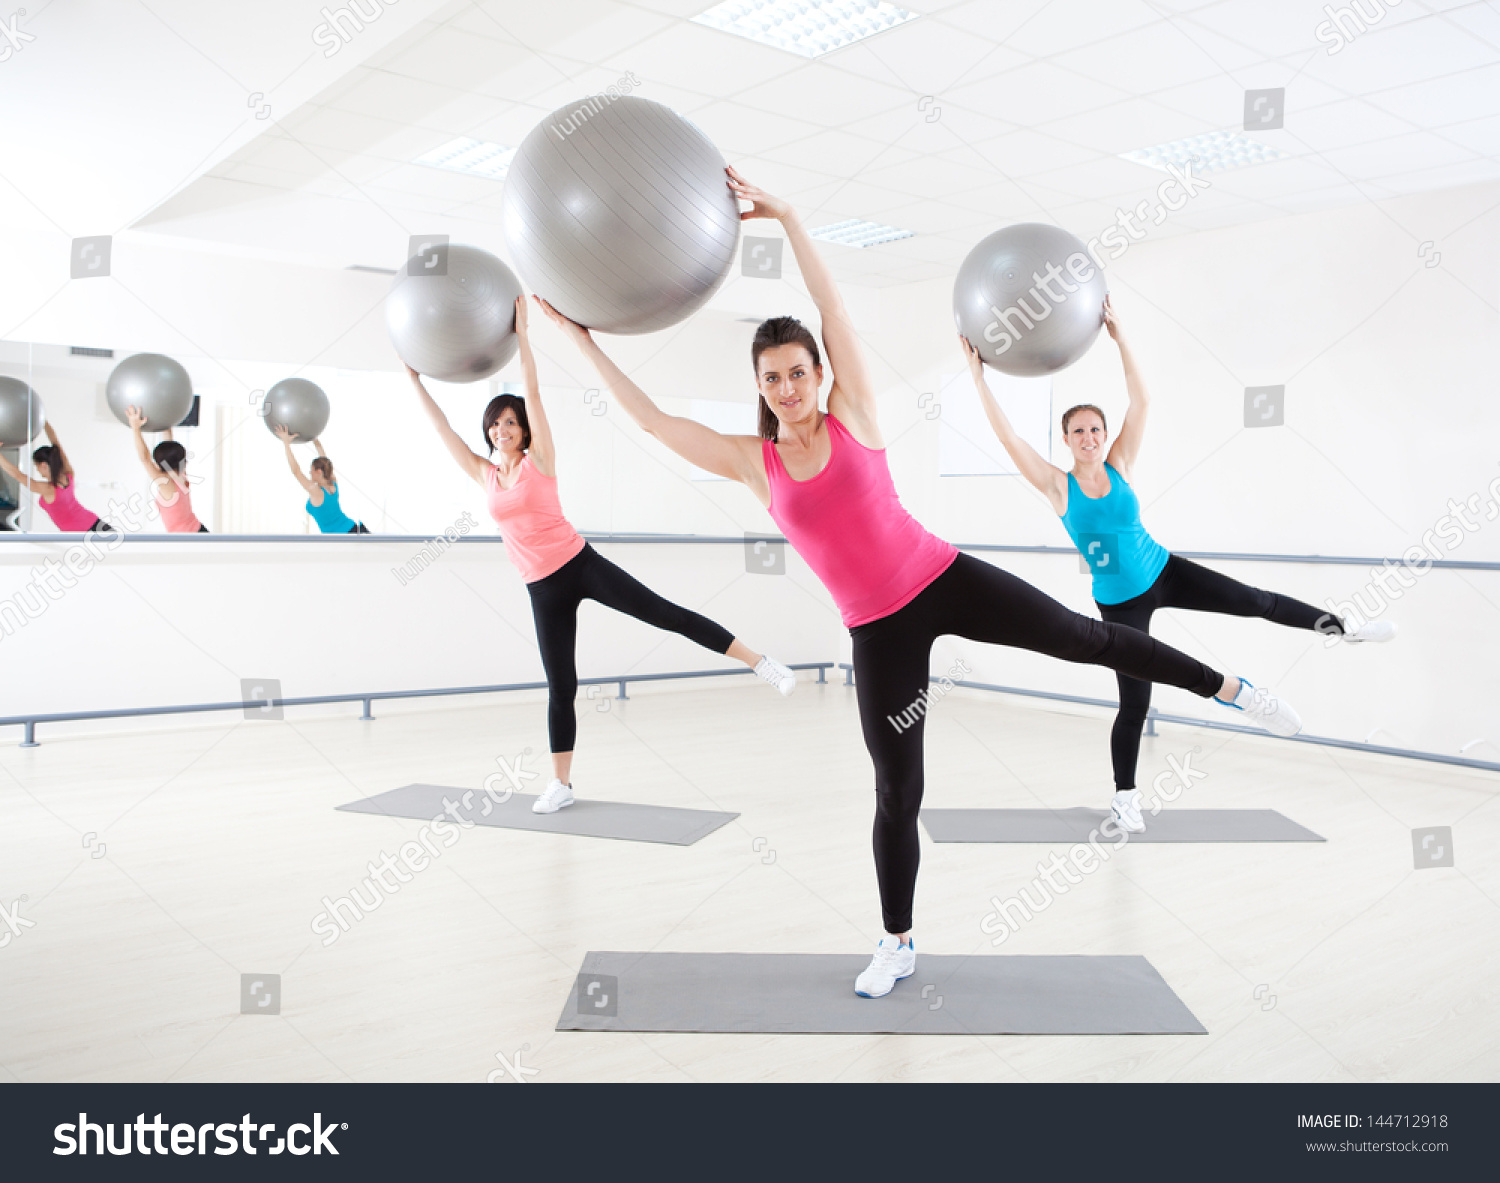 Young women doing exercise pilates ball stock photo for Gimnasio pilates